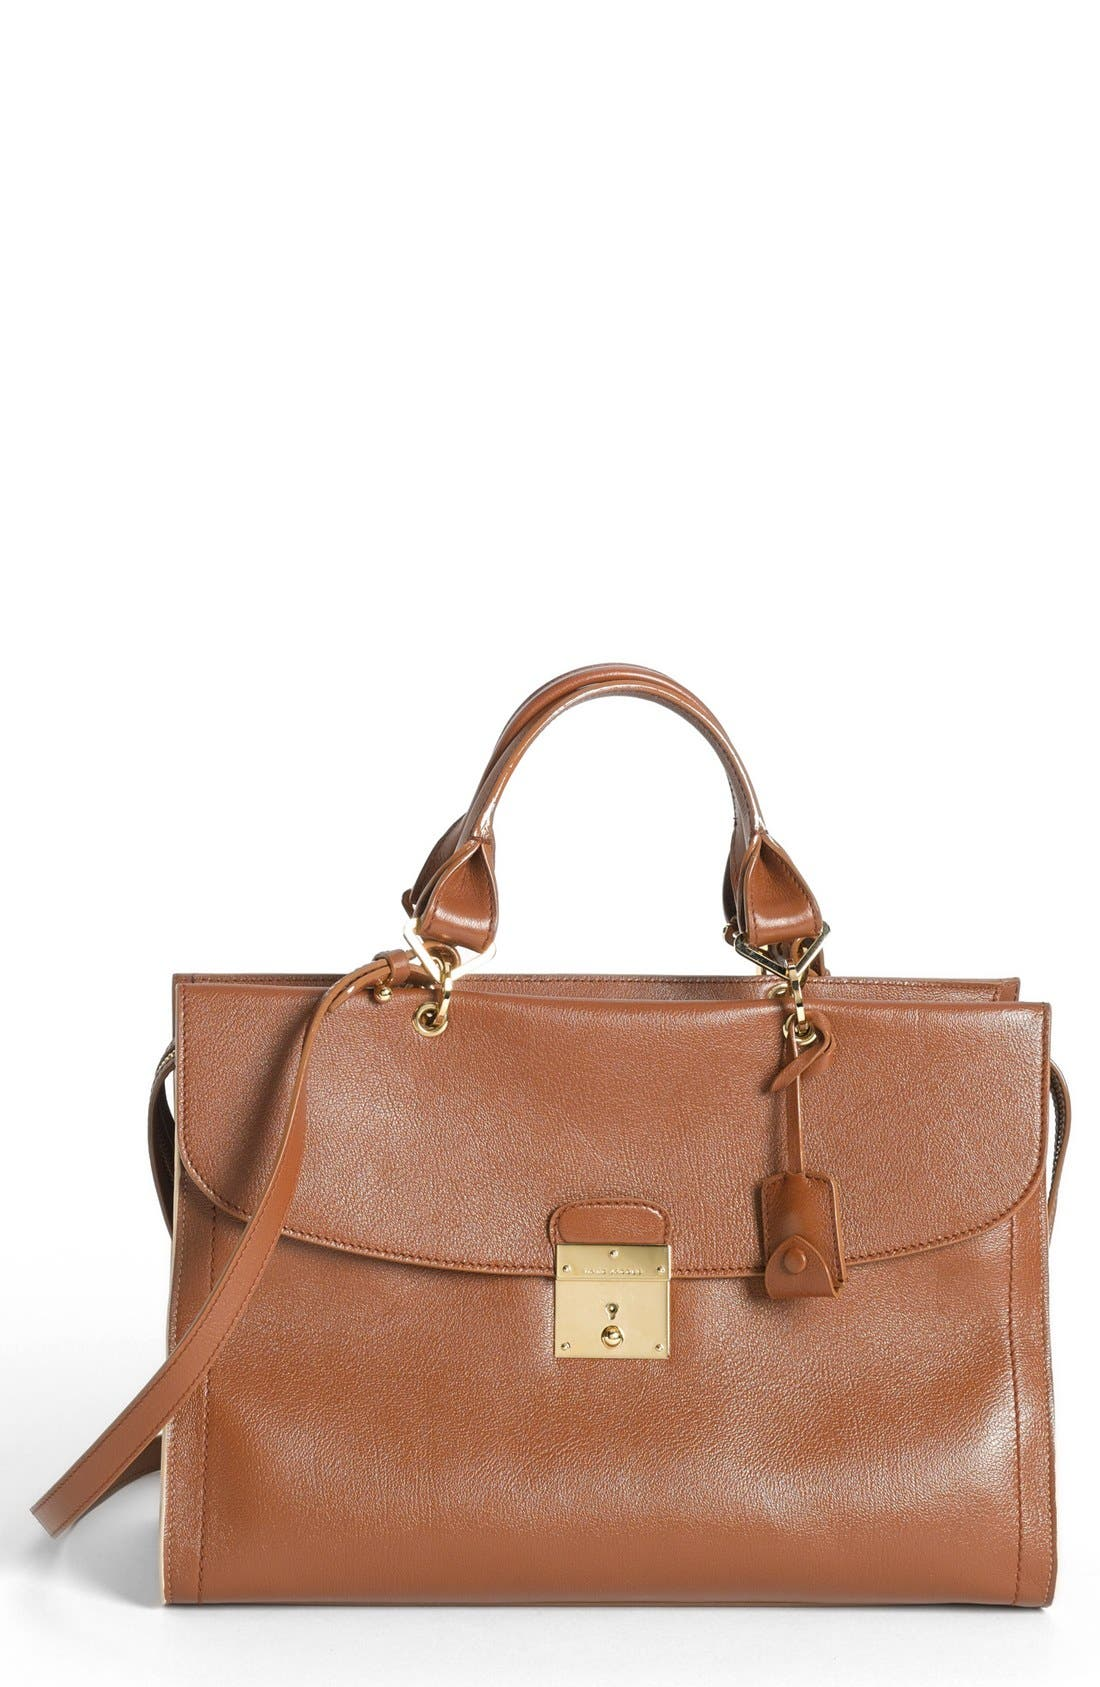 Alternate Image 1 Selected - MARC JACOBS '54' Leather Satchel